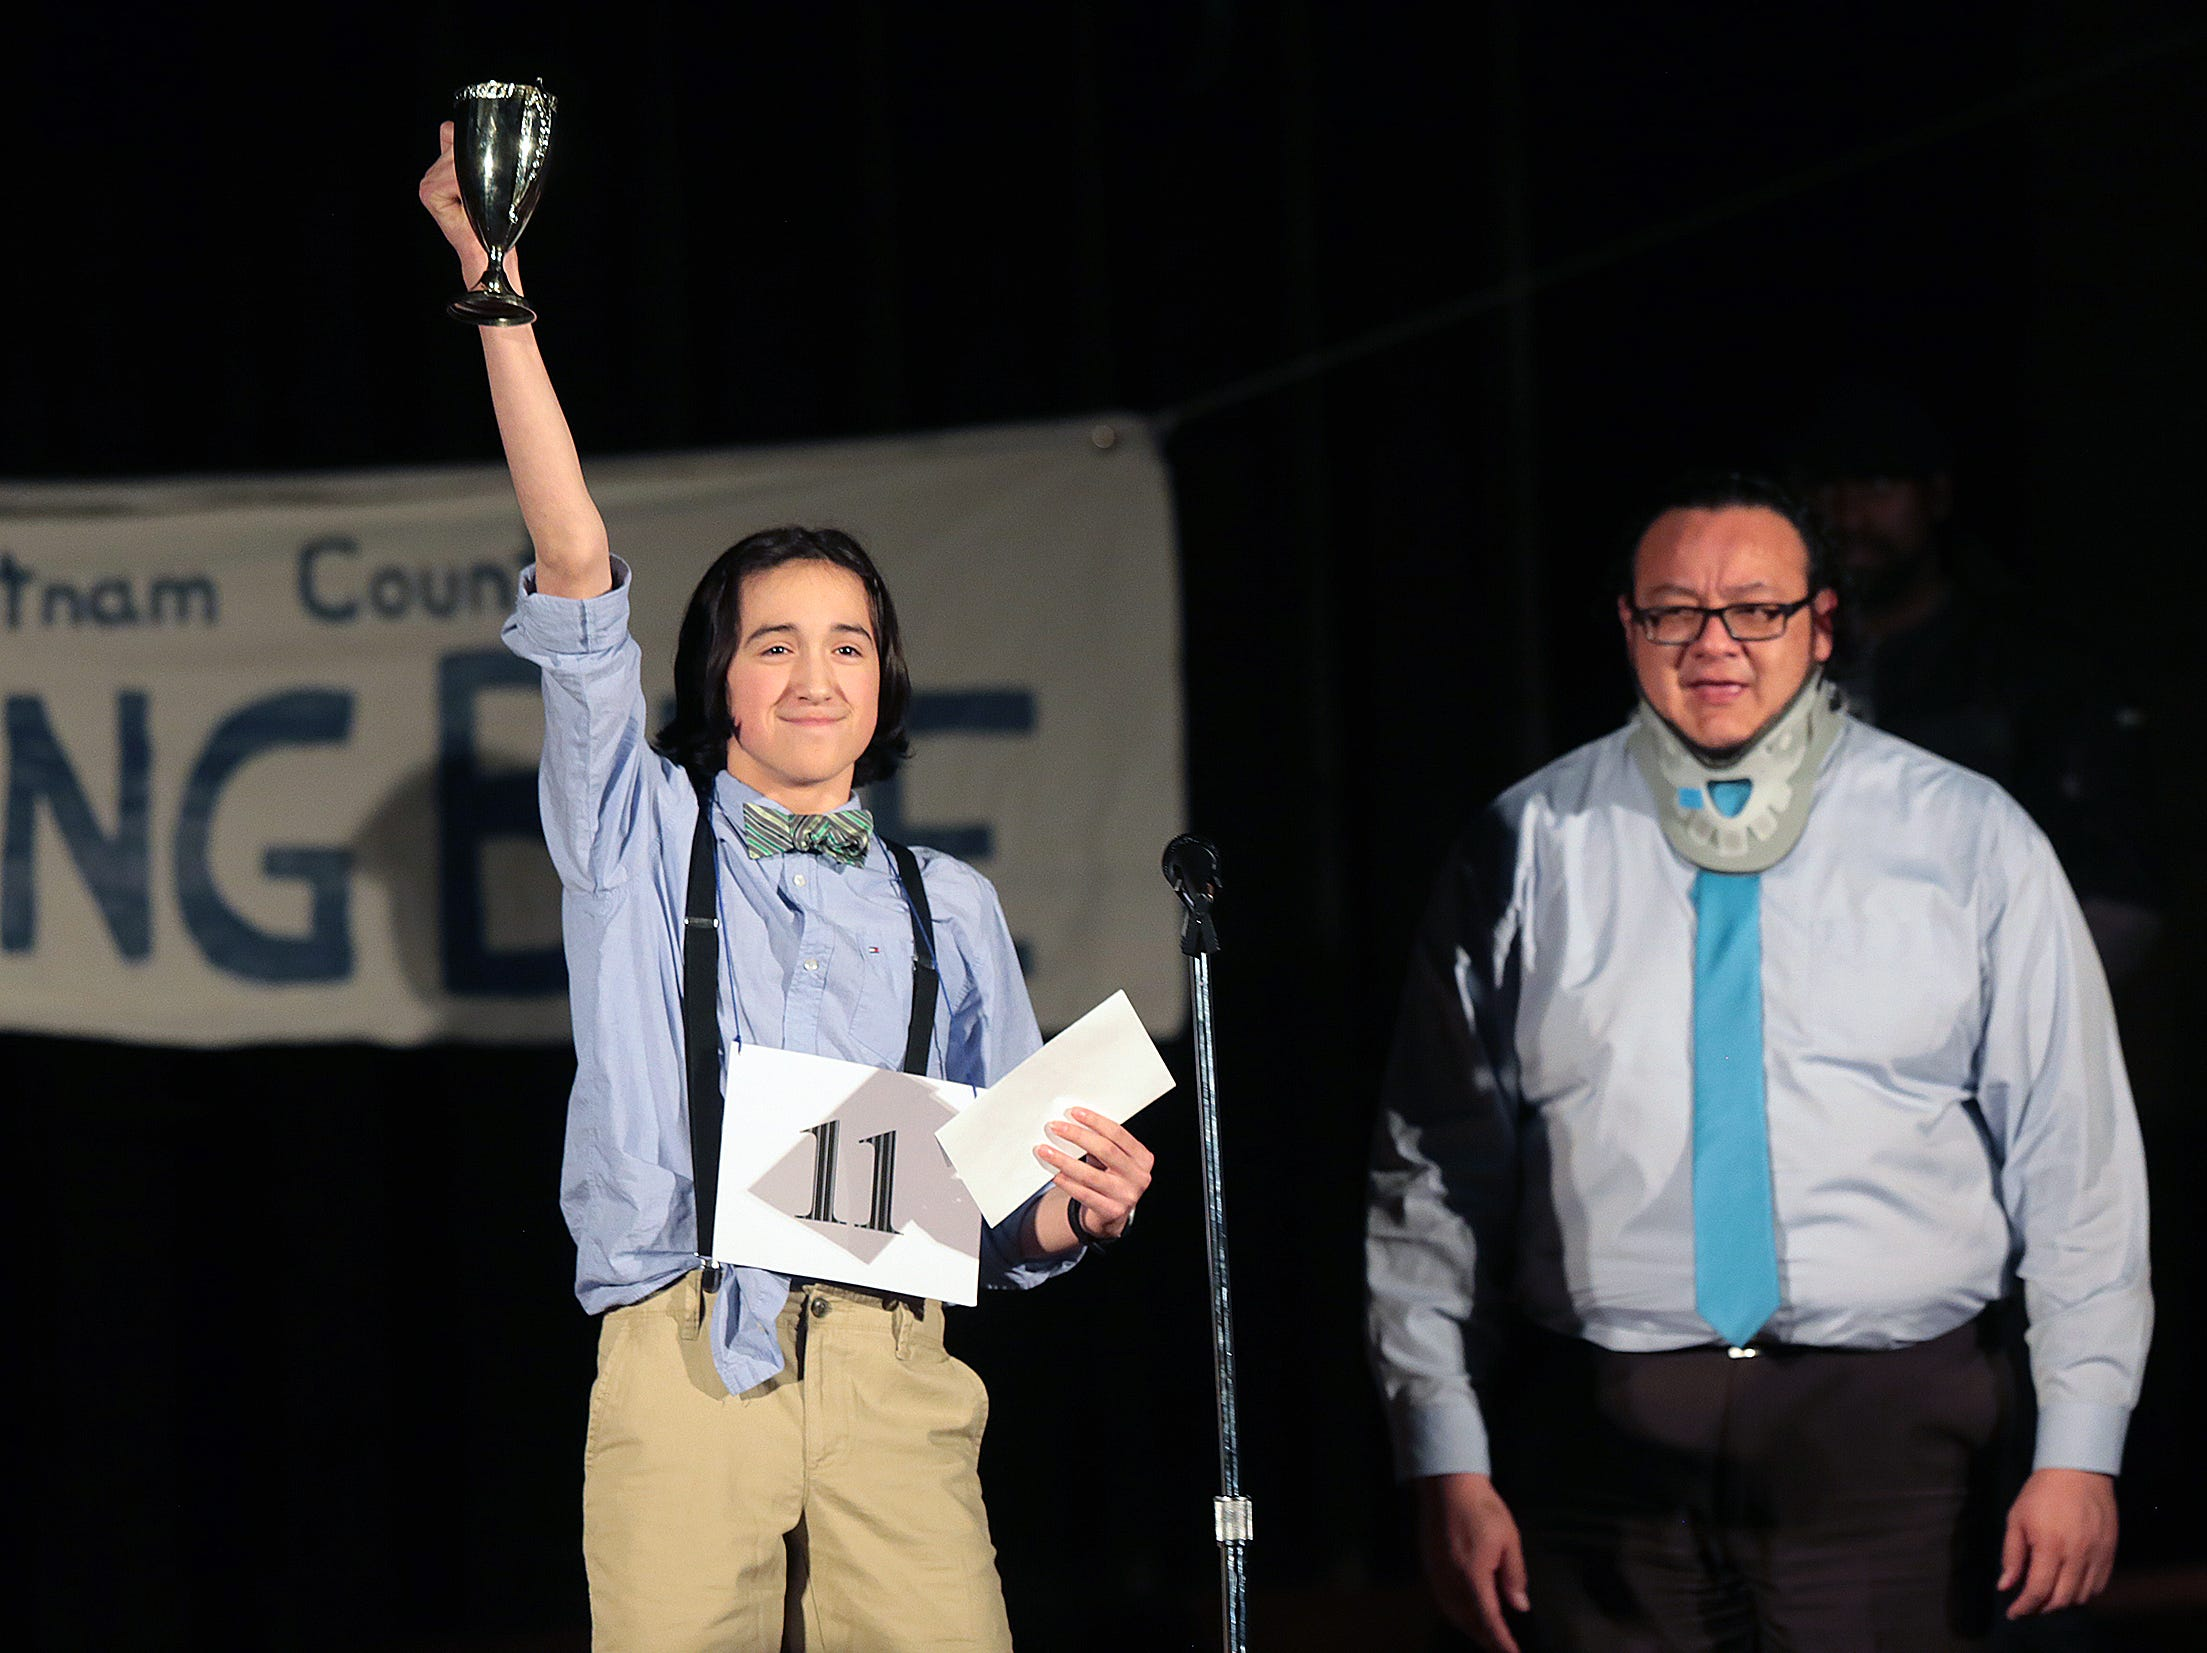 Kids-N-Co stages their production of The 25th Annual Putnam County Spelling Bee Saturday night at First Presbyterian Church. The comedy musical runs weekends through January 27th. For more information on times and ticket prices visit their Facebook page at www.facebook.com/ElPasoKIDSNCO